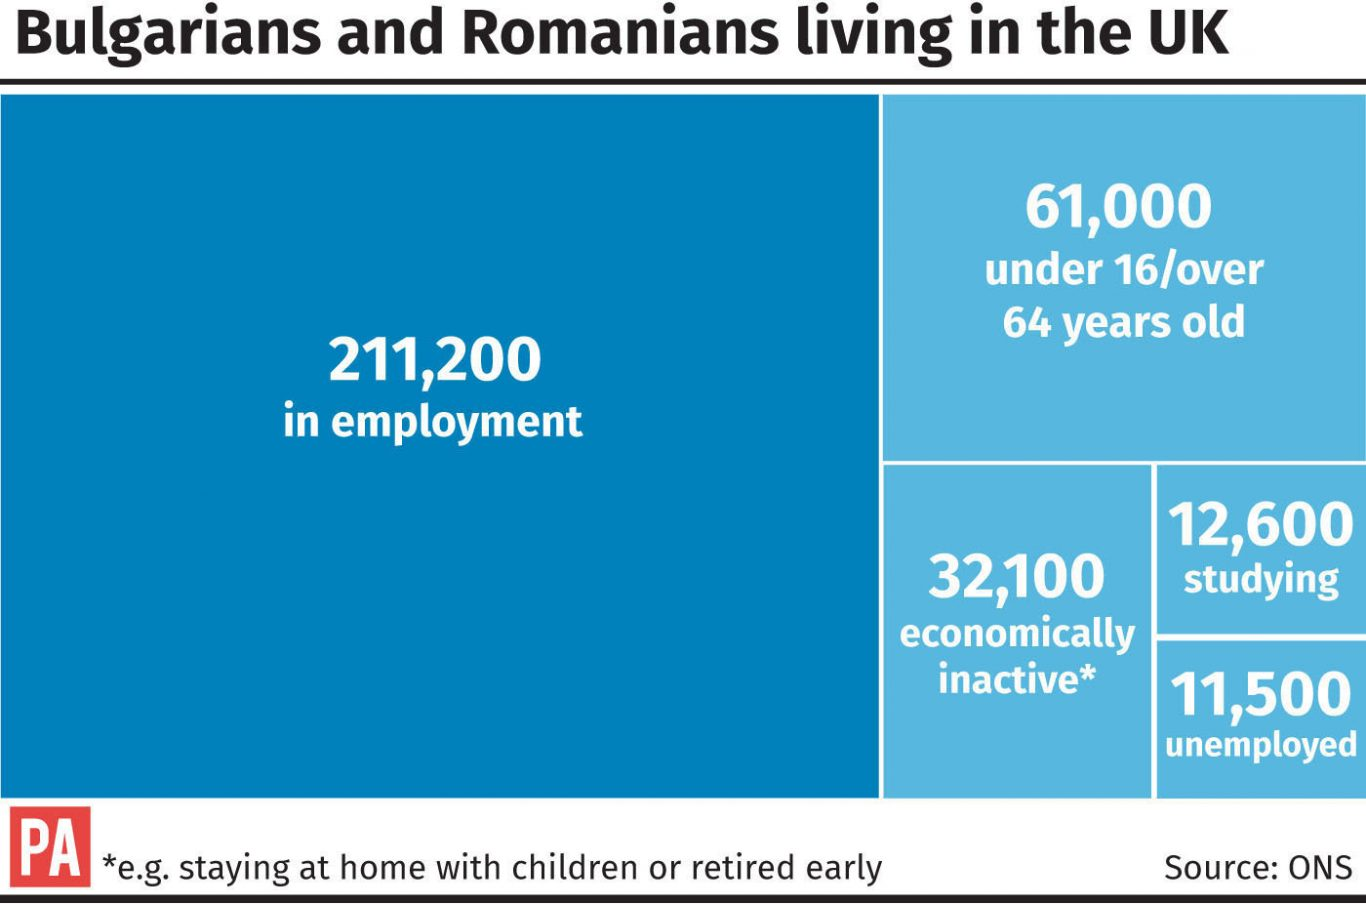 Bulgarians and Romanians living in the UK graphic